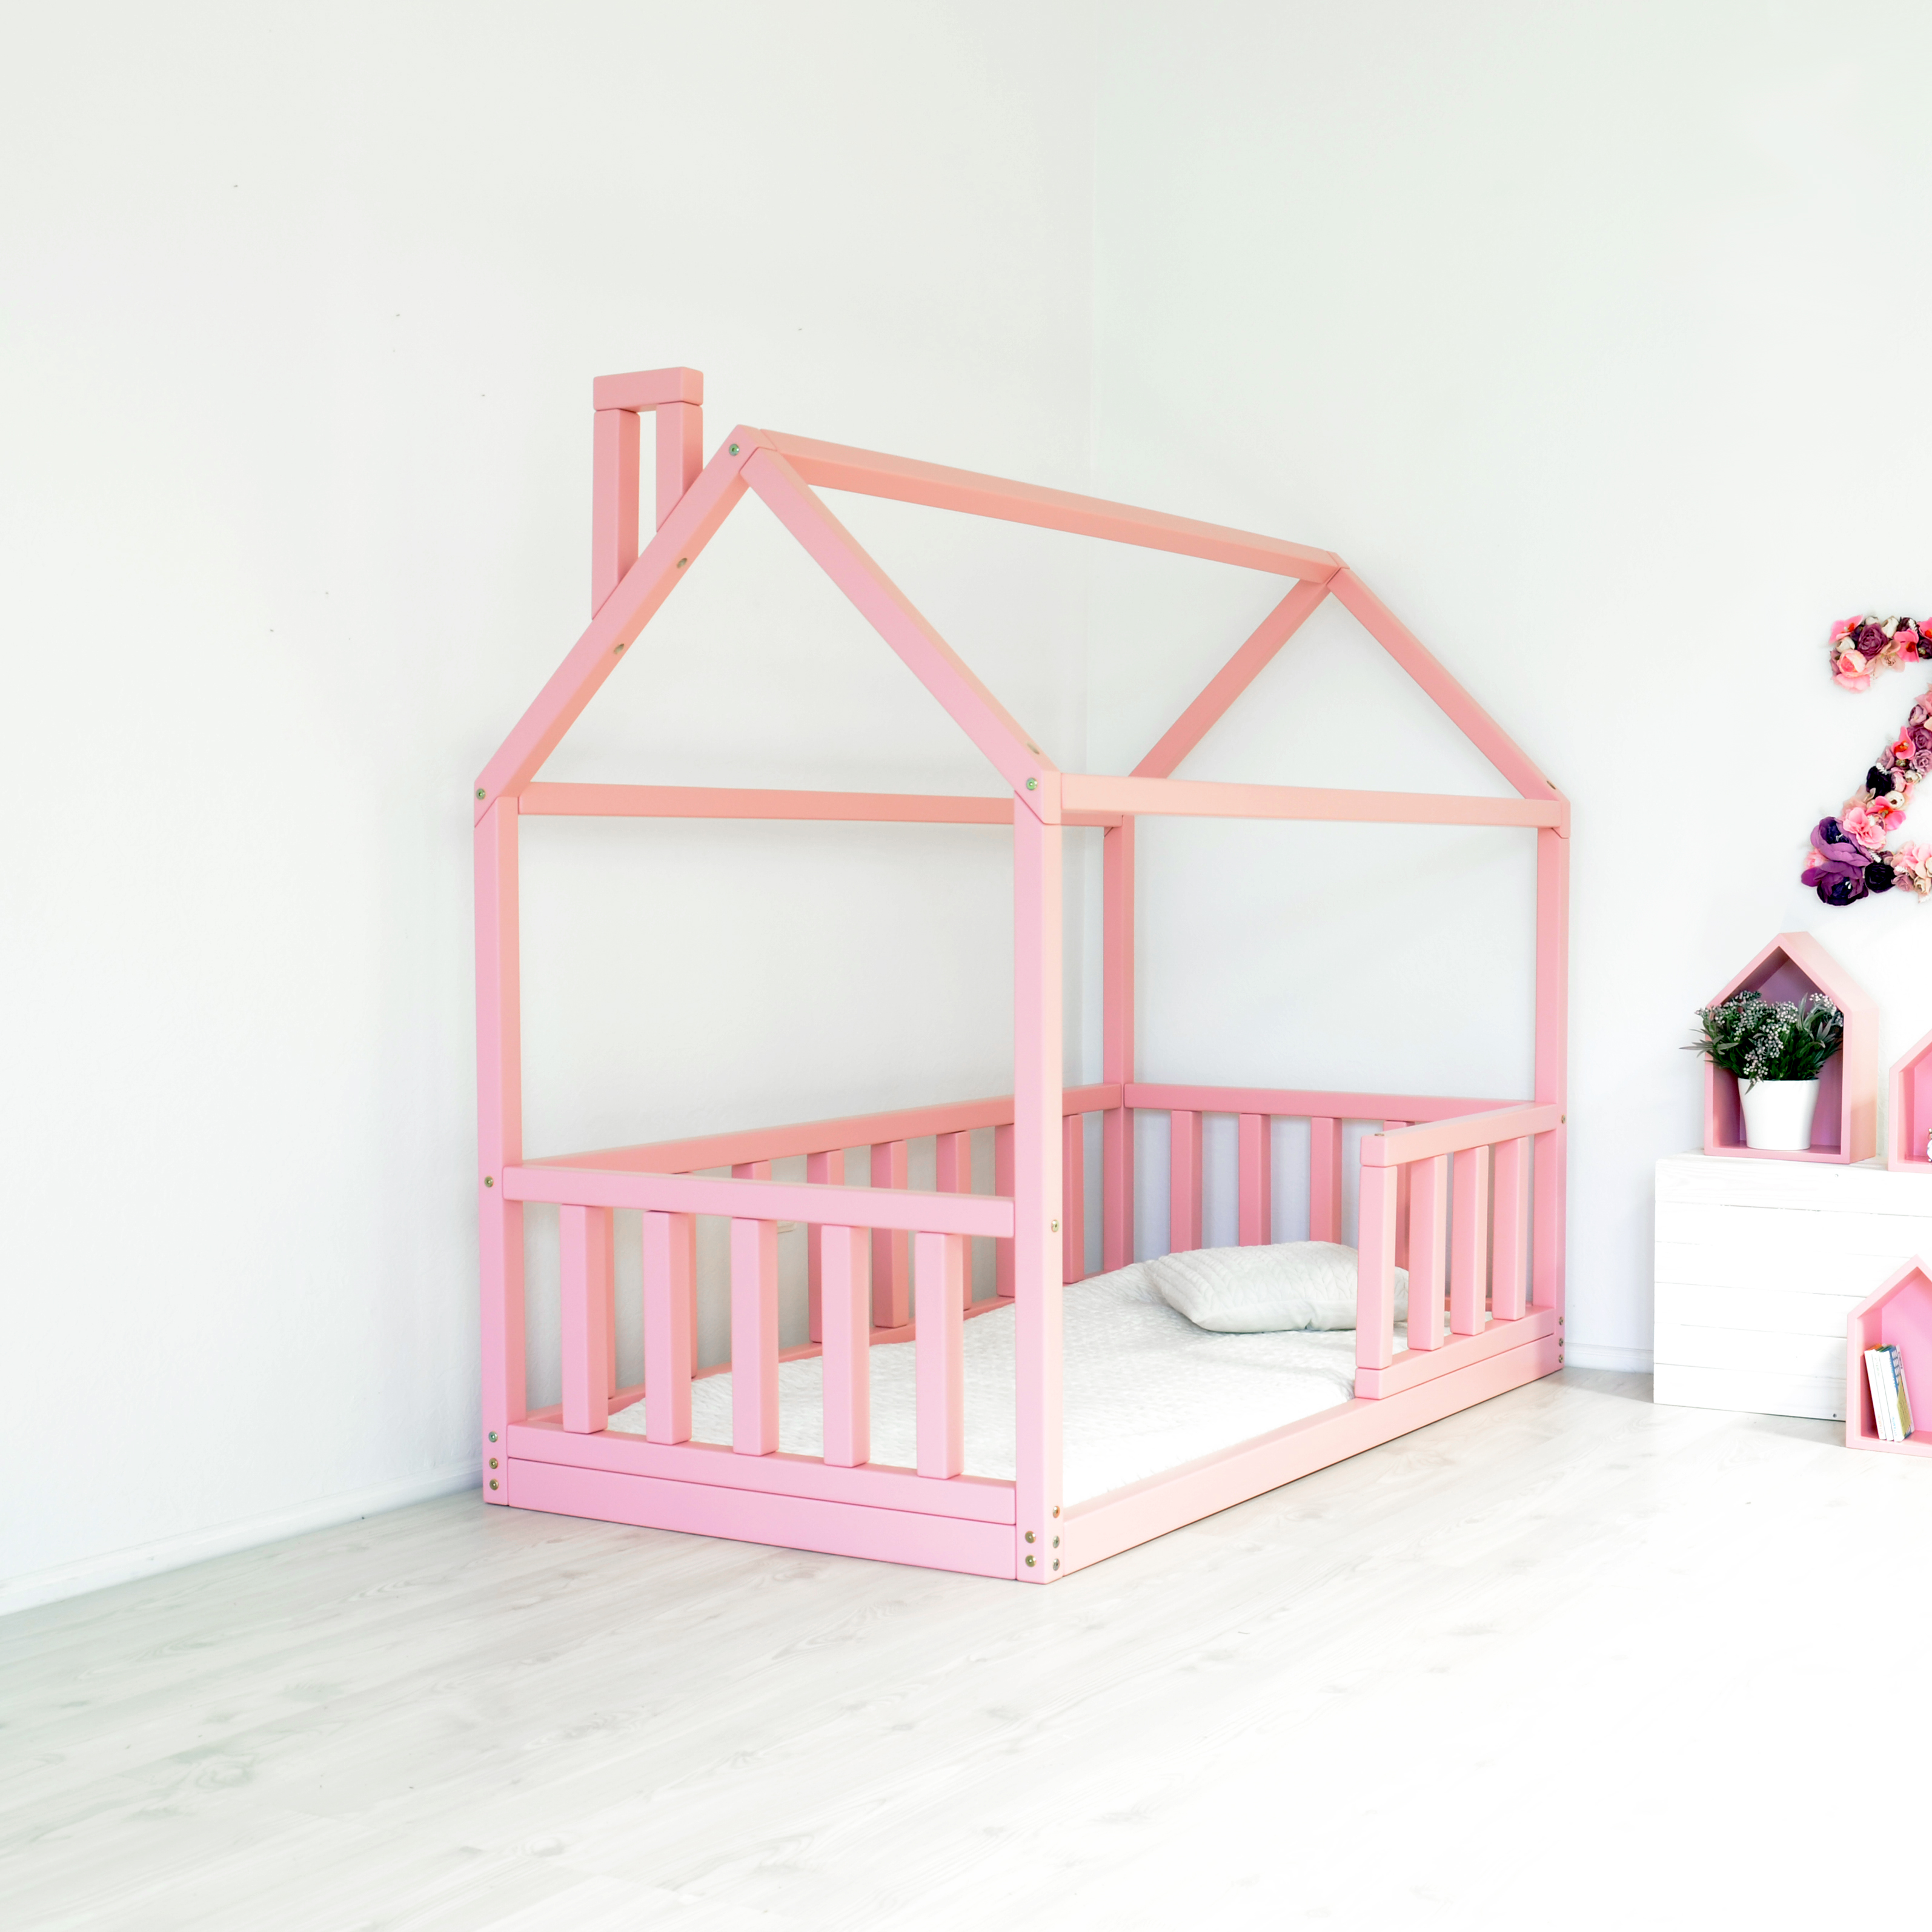 House bed frame with rails shopkidday for Bed frame with dog kennel